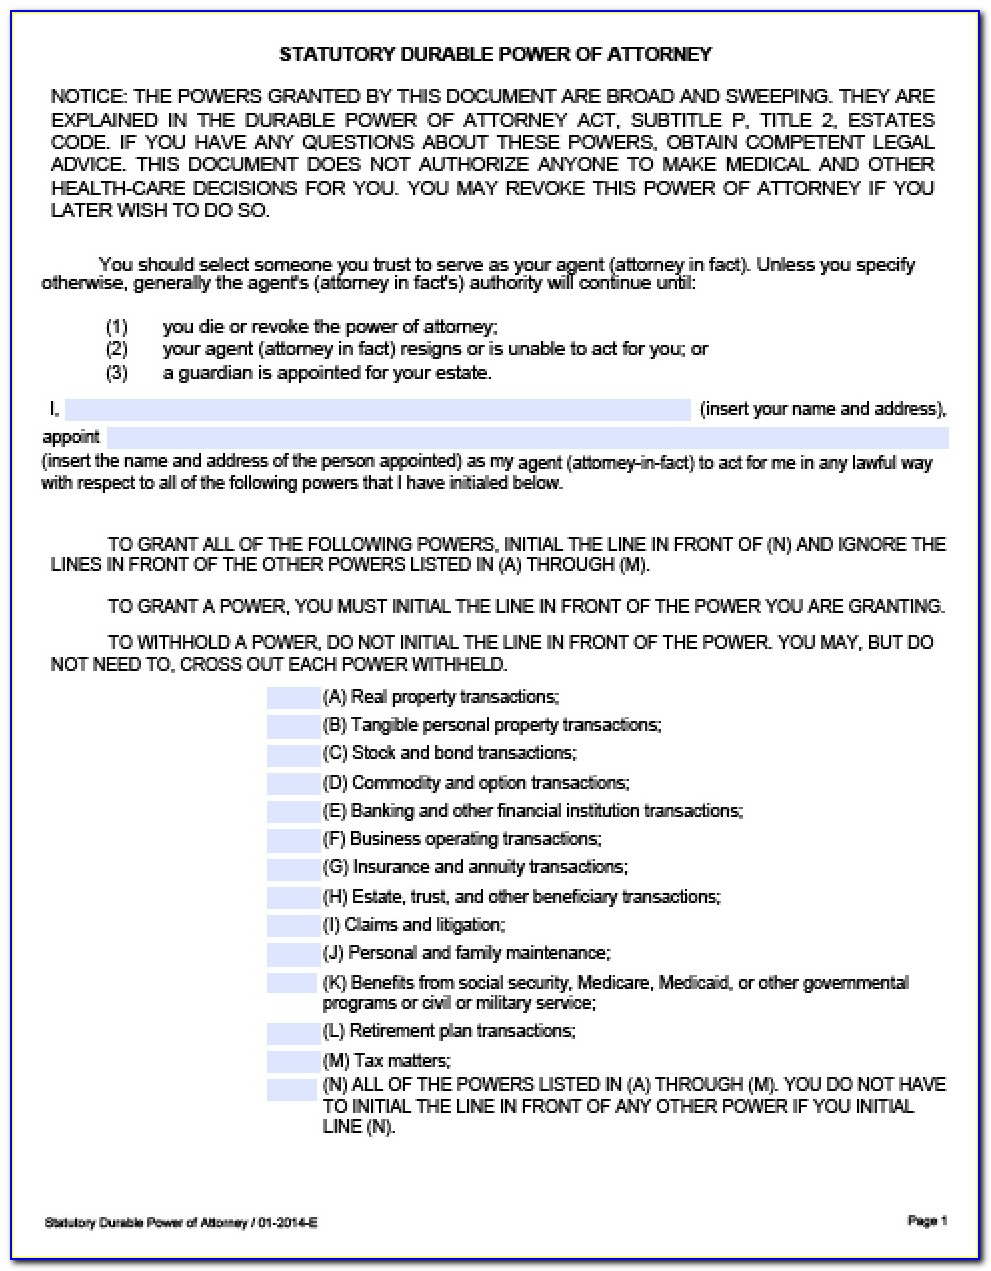 Texas Statutory Durable Power Of Attorney Form Free